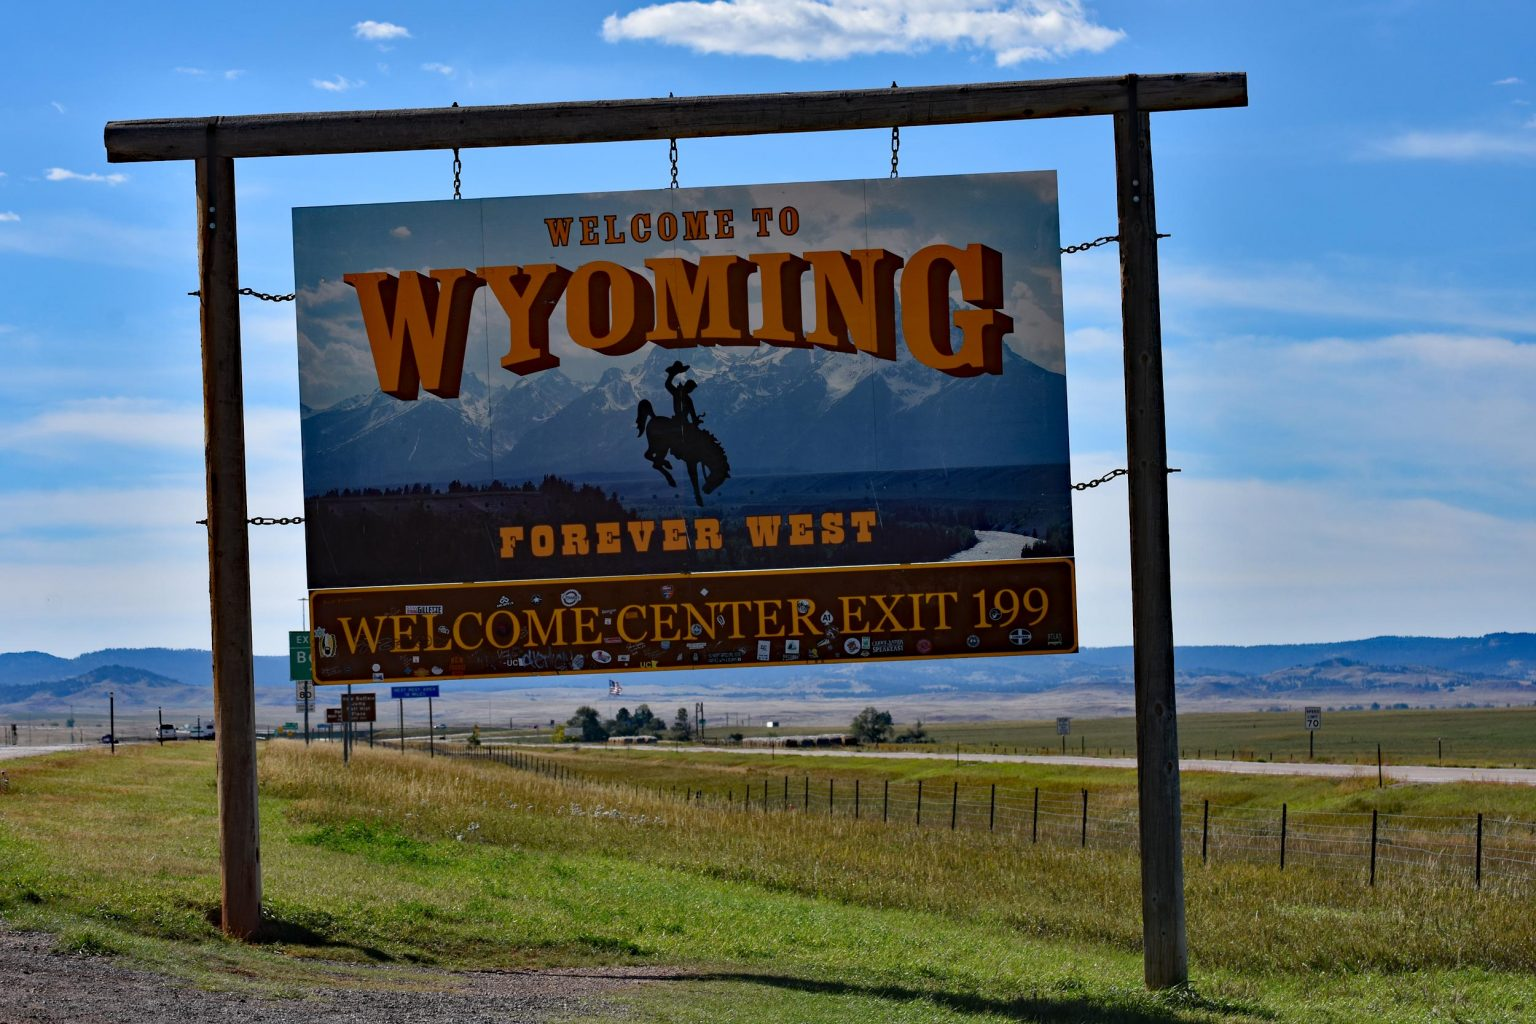 Welcome to Wyoming, USA